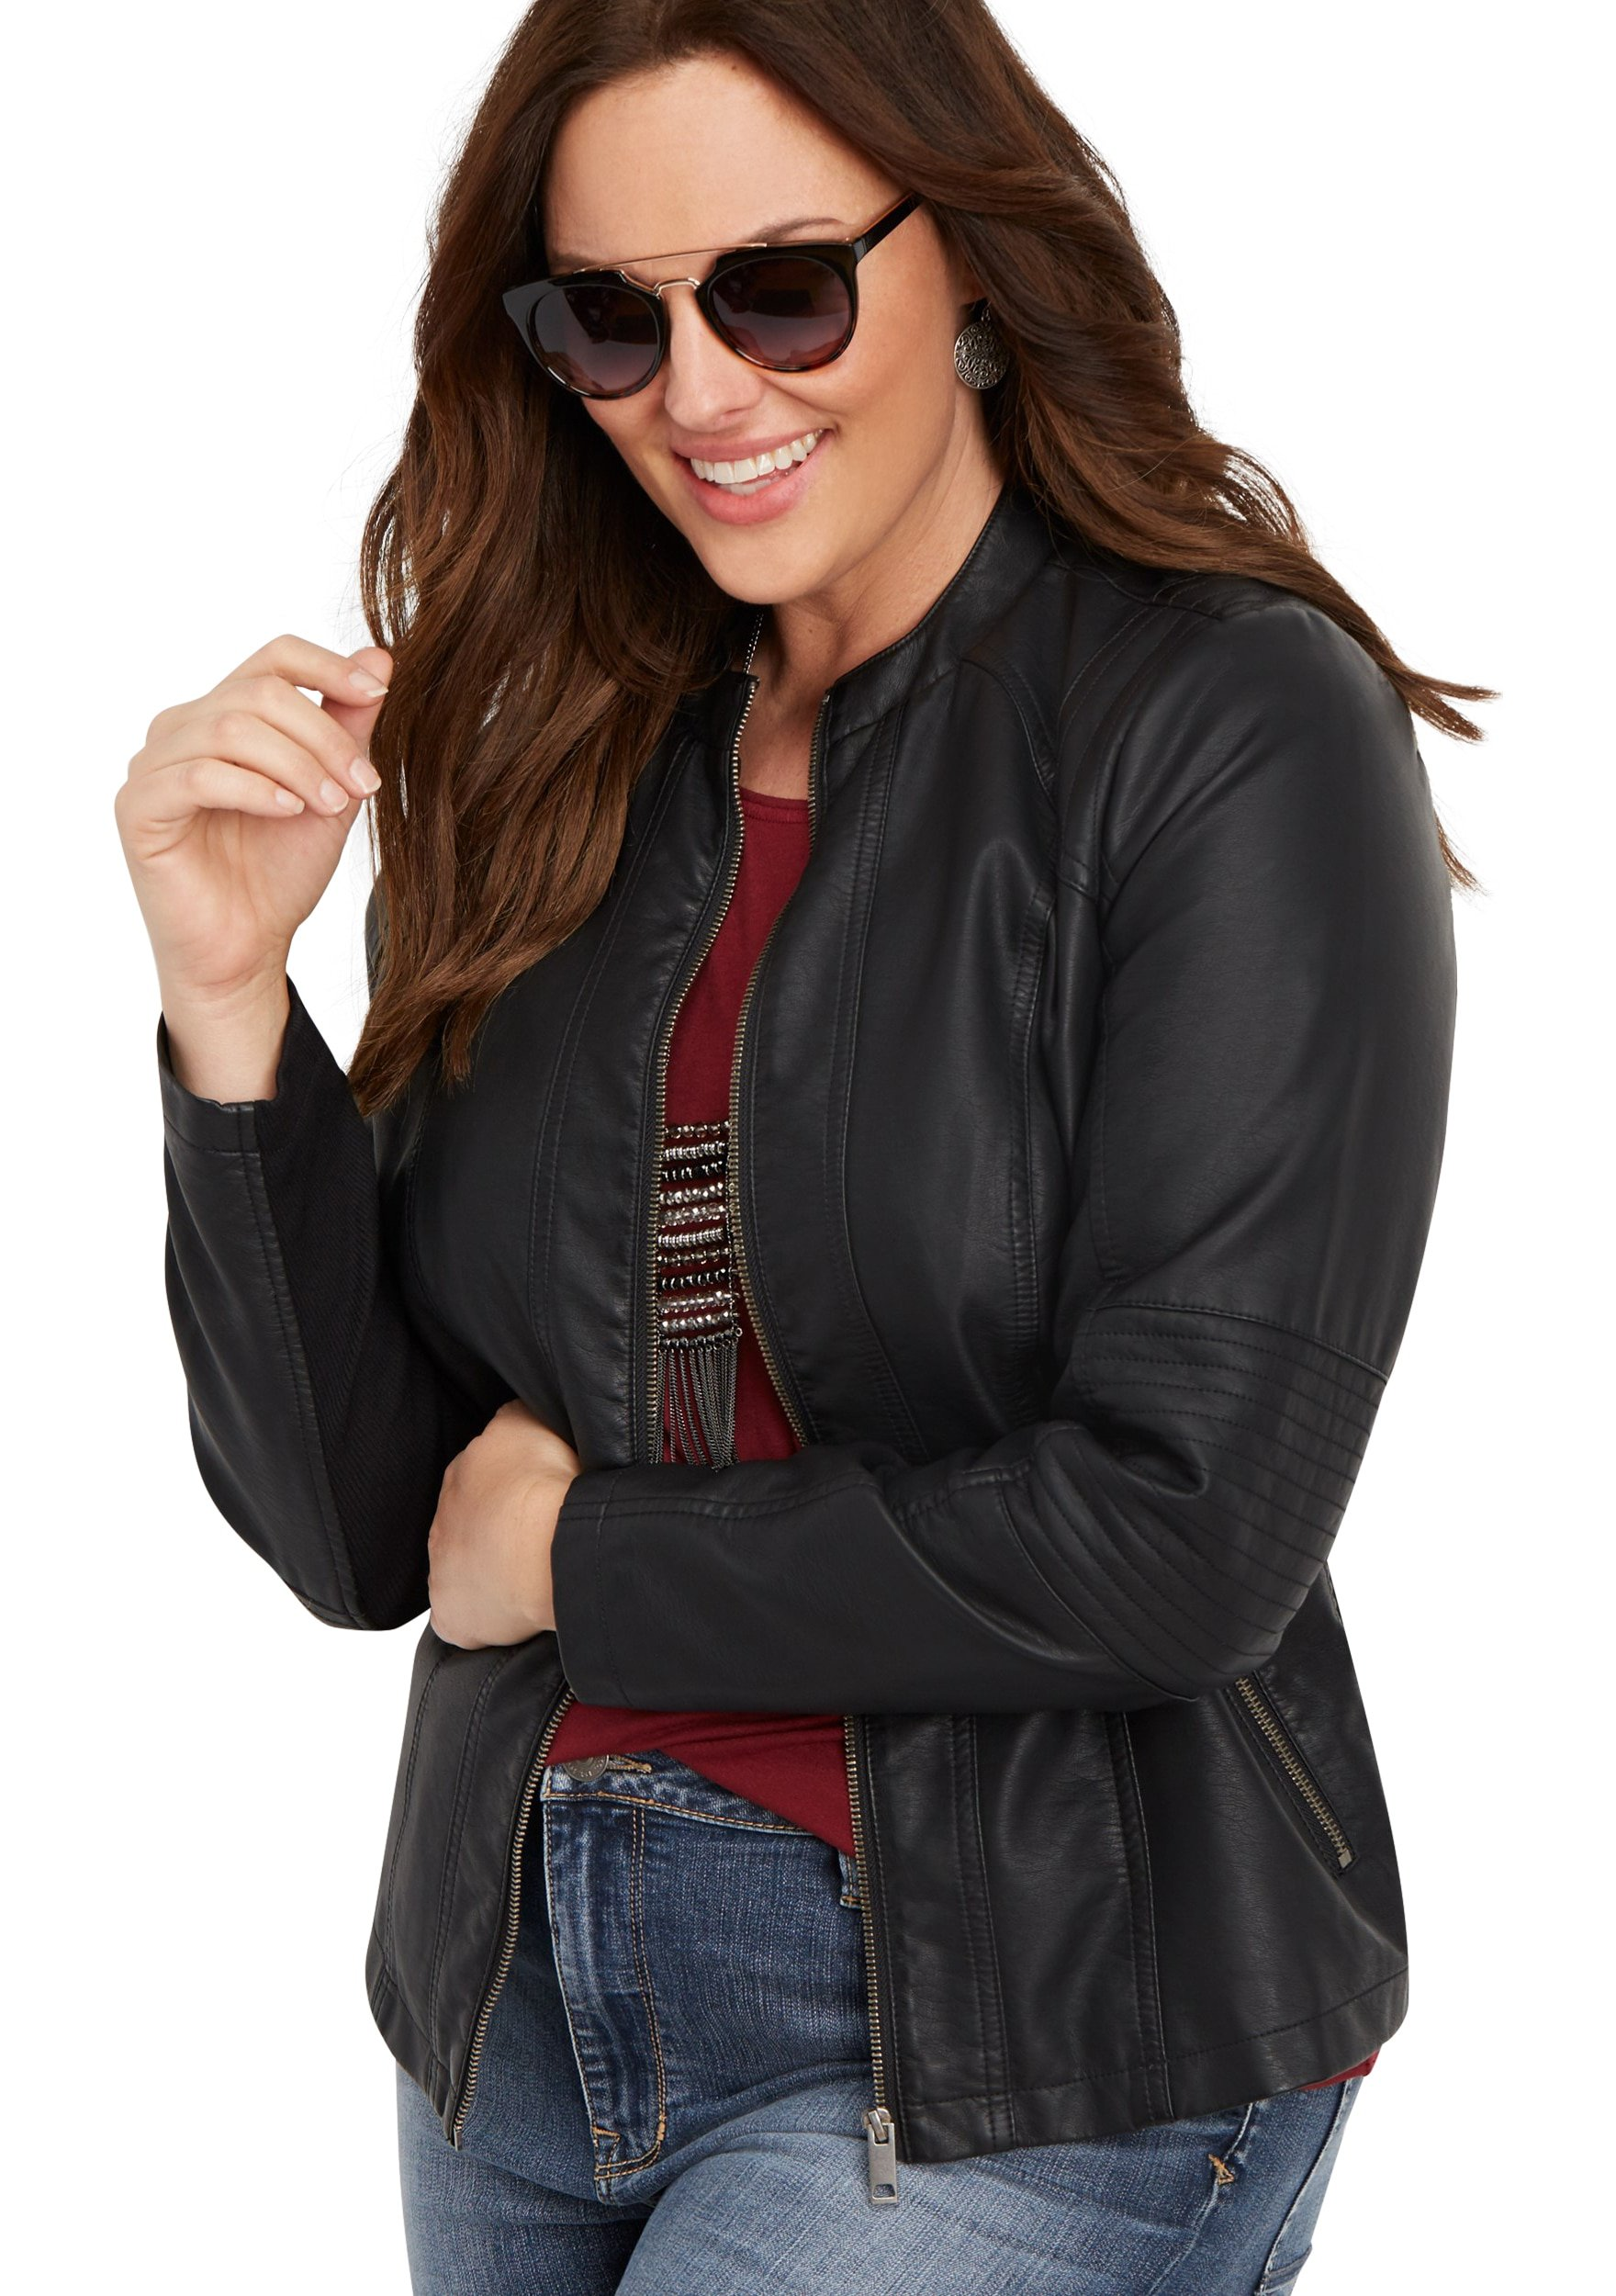 maurices Women's Plus Size Elbow Stitched Faux Leather Jacket 1 Black